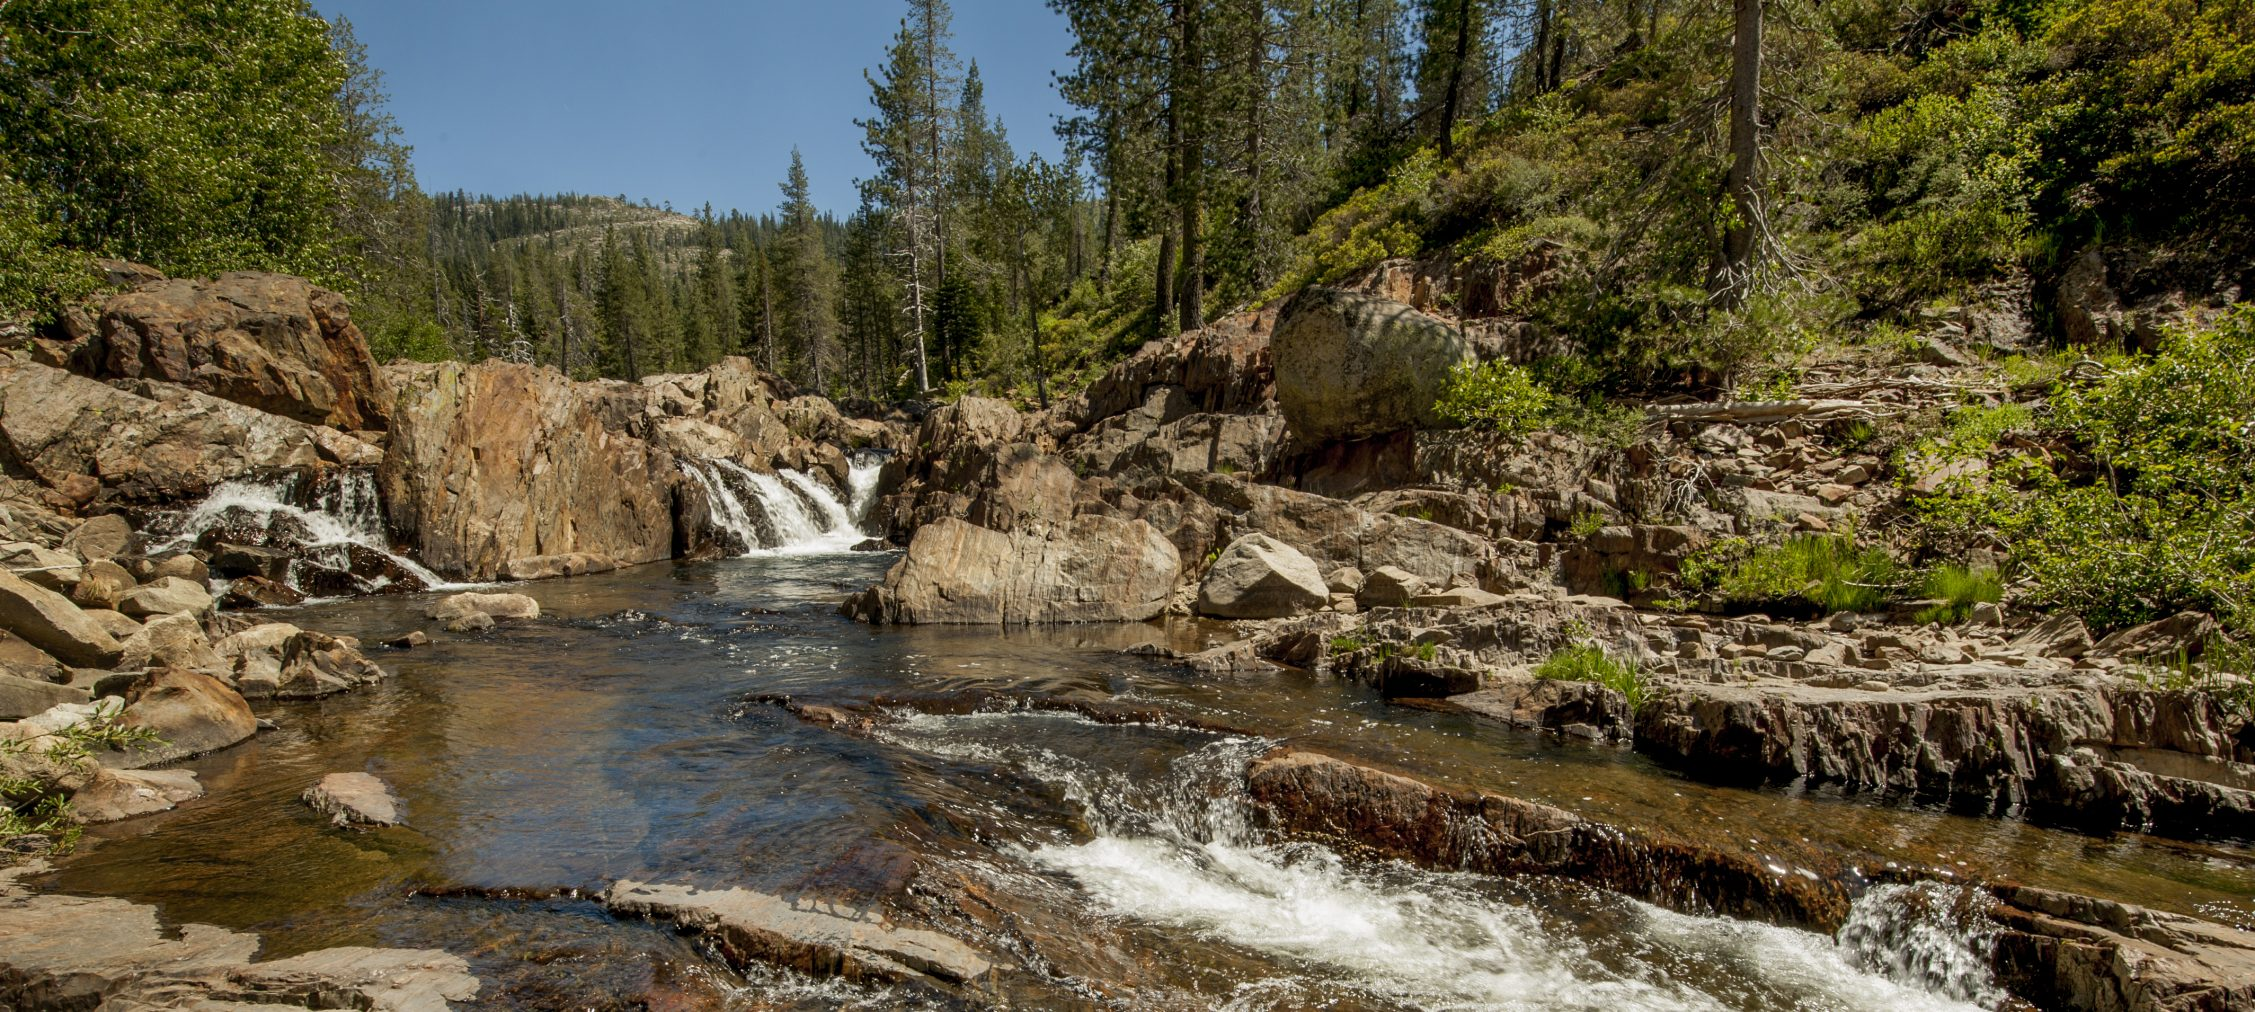 South Fork of the Yuba River, California.